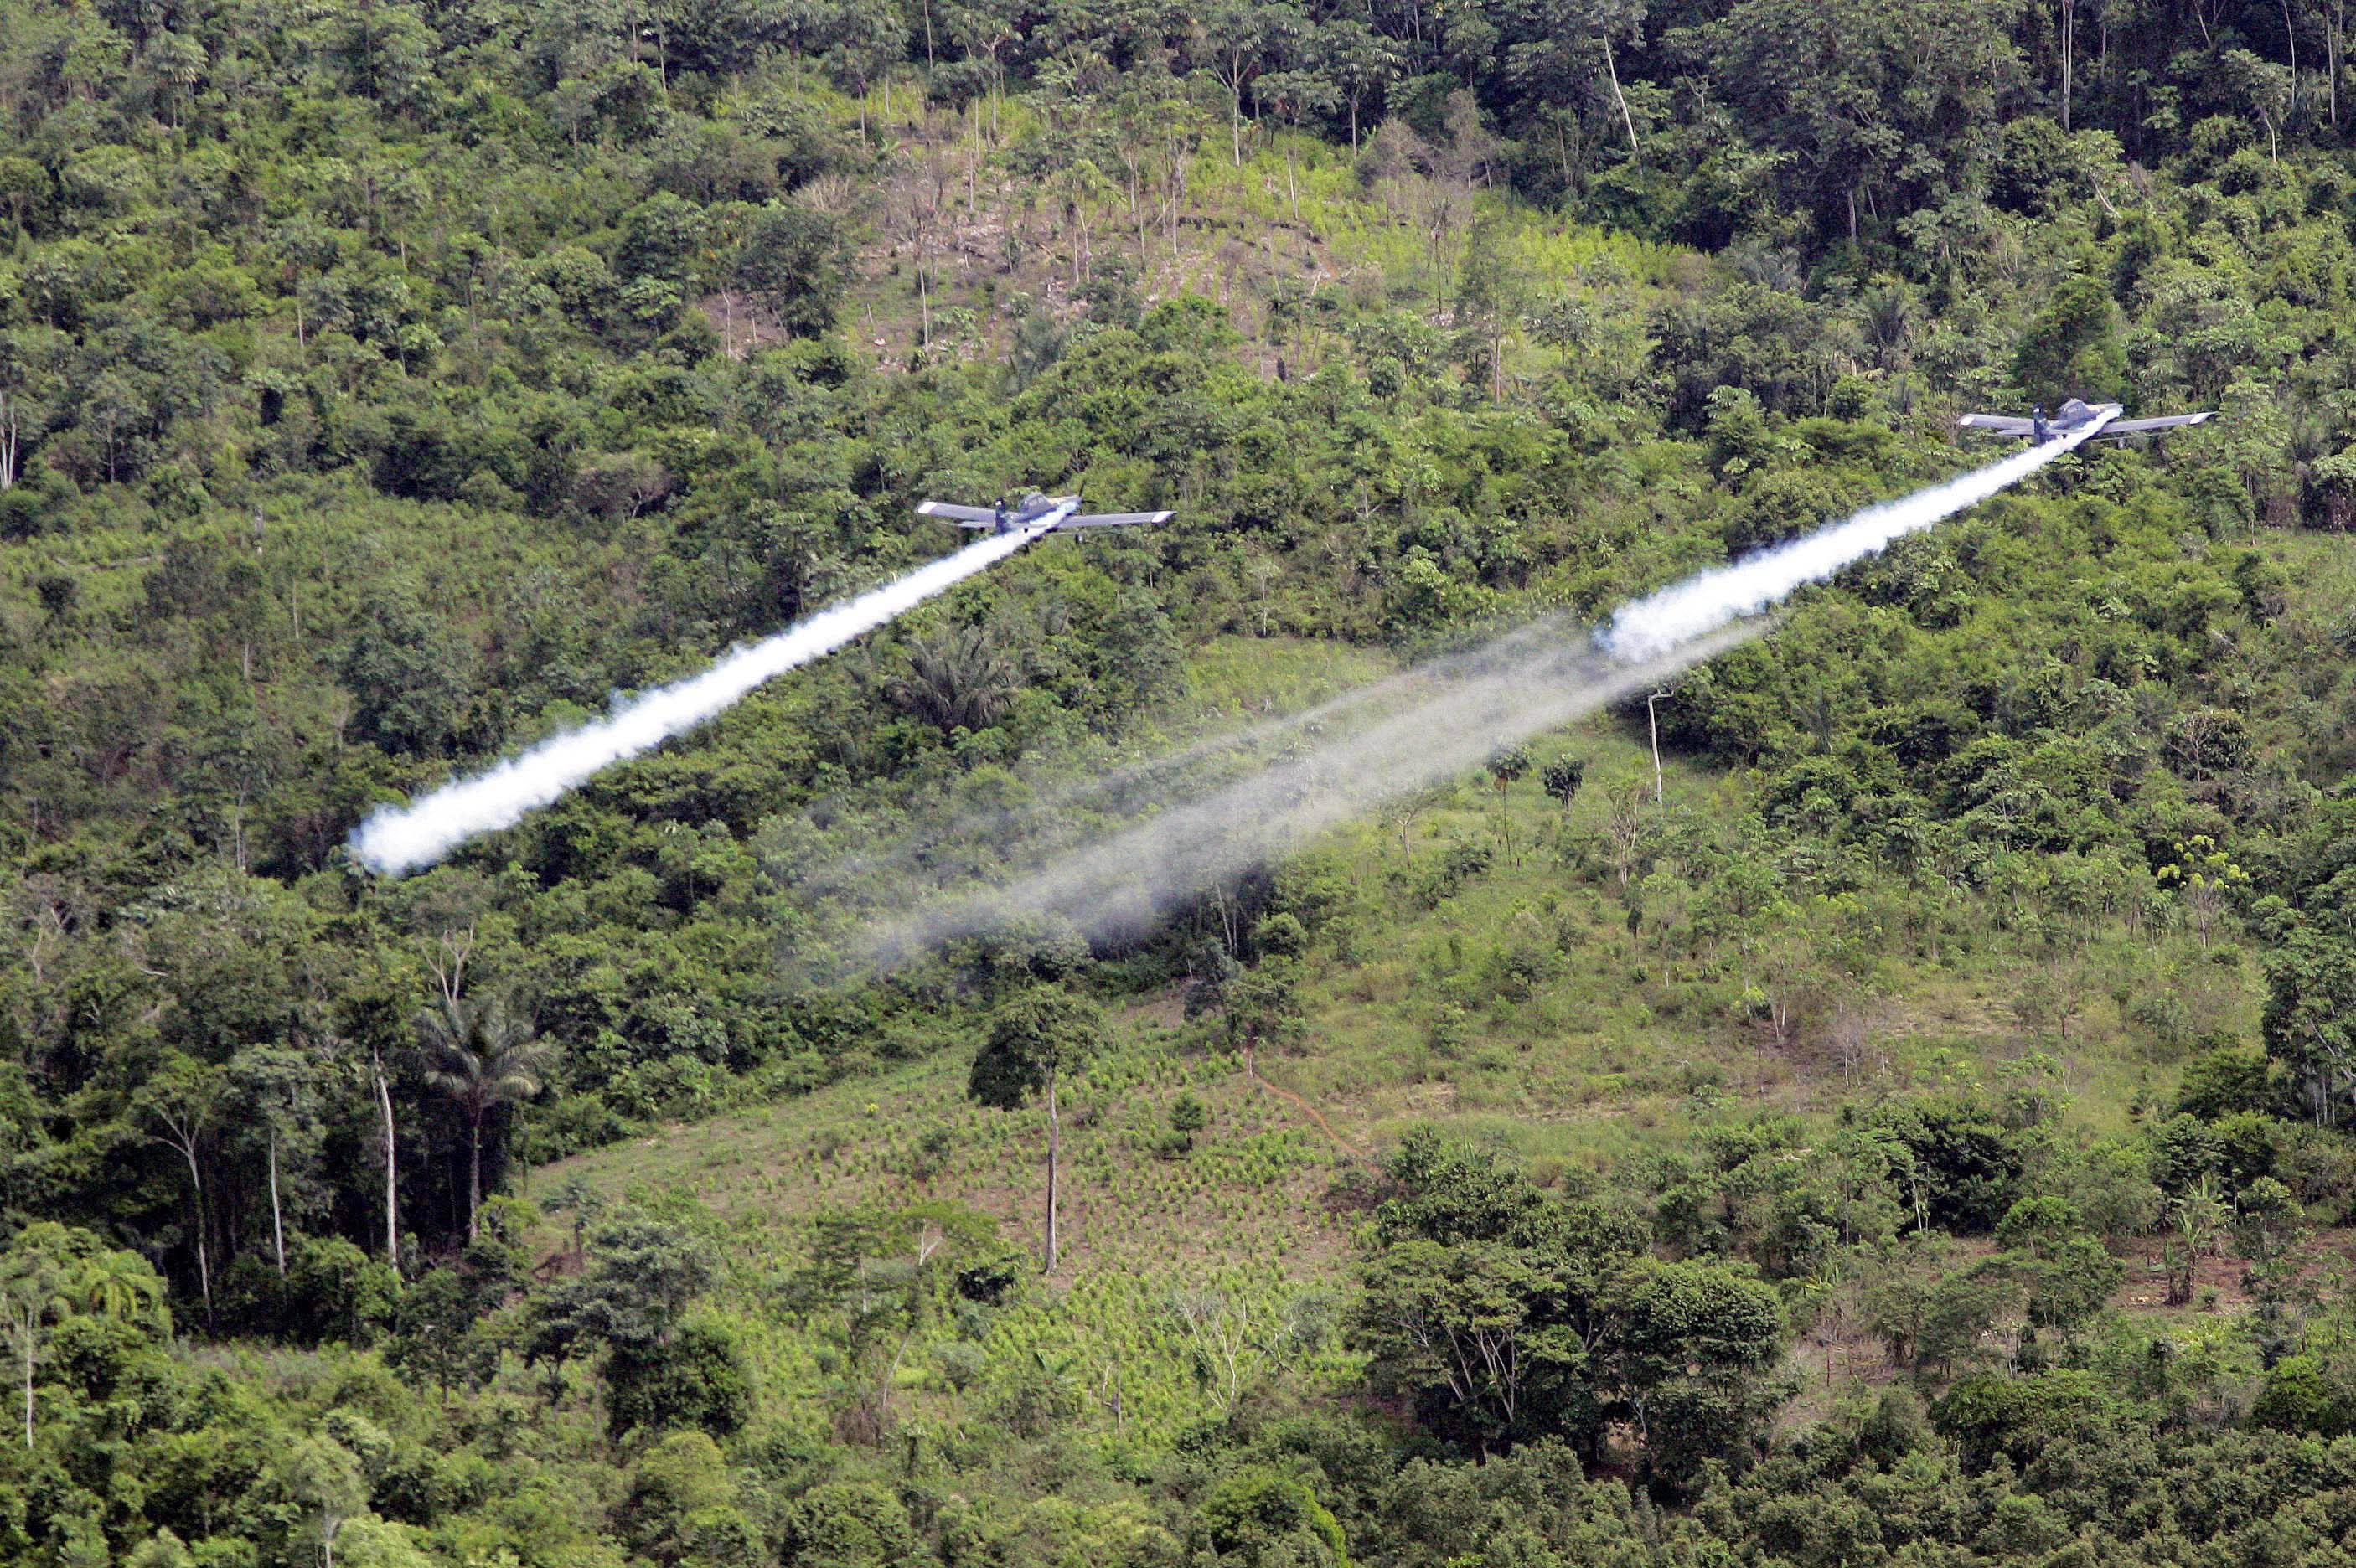 Coca production in Colombia jumped 39 pct in 2014